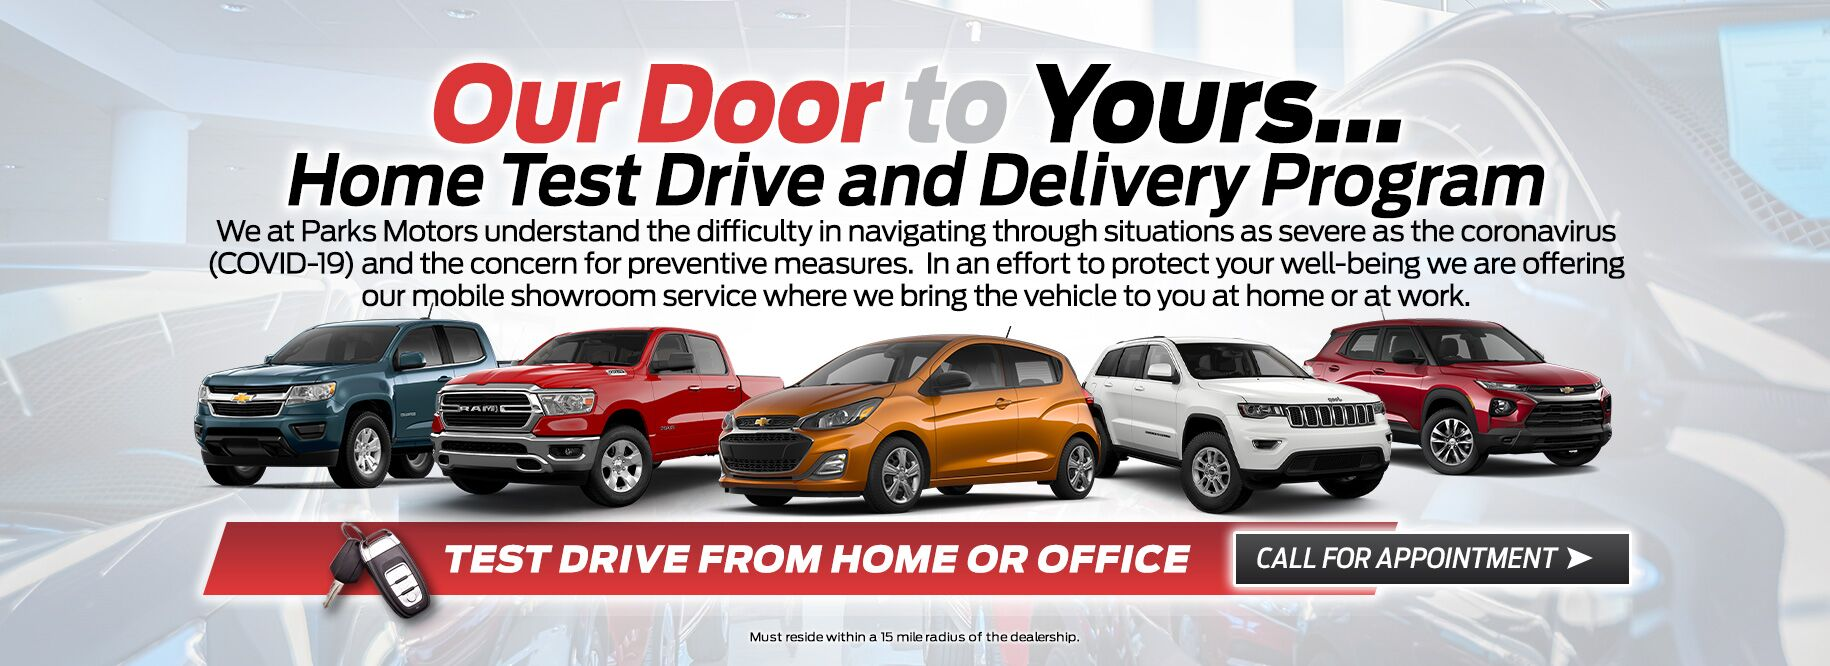 Home Test Drive and Delivery Program at Parks Chevrolet